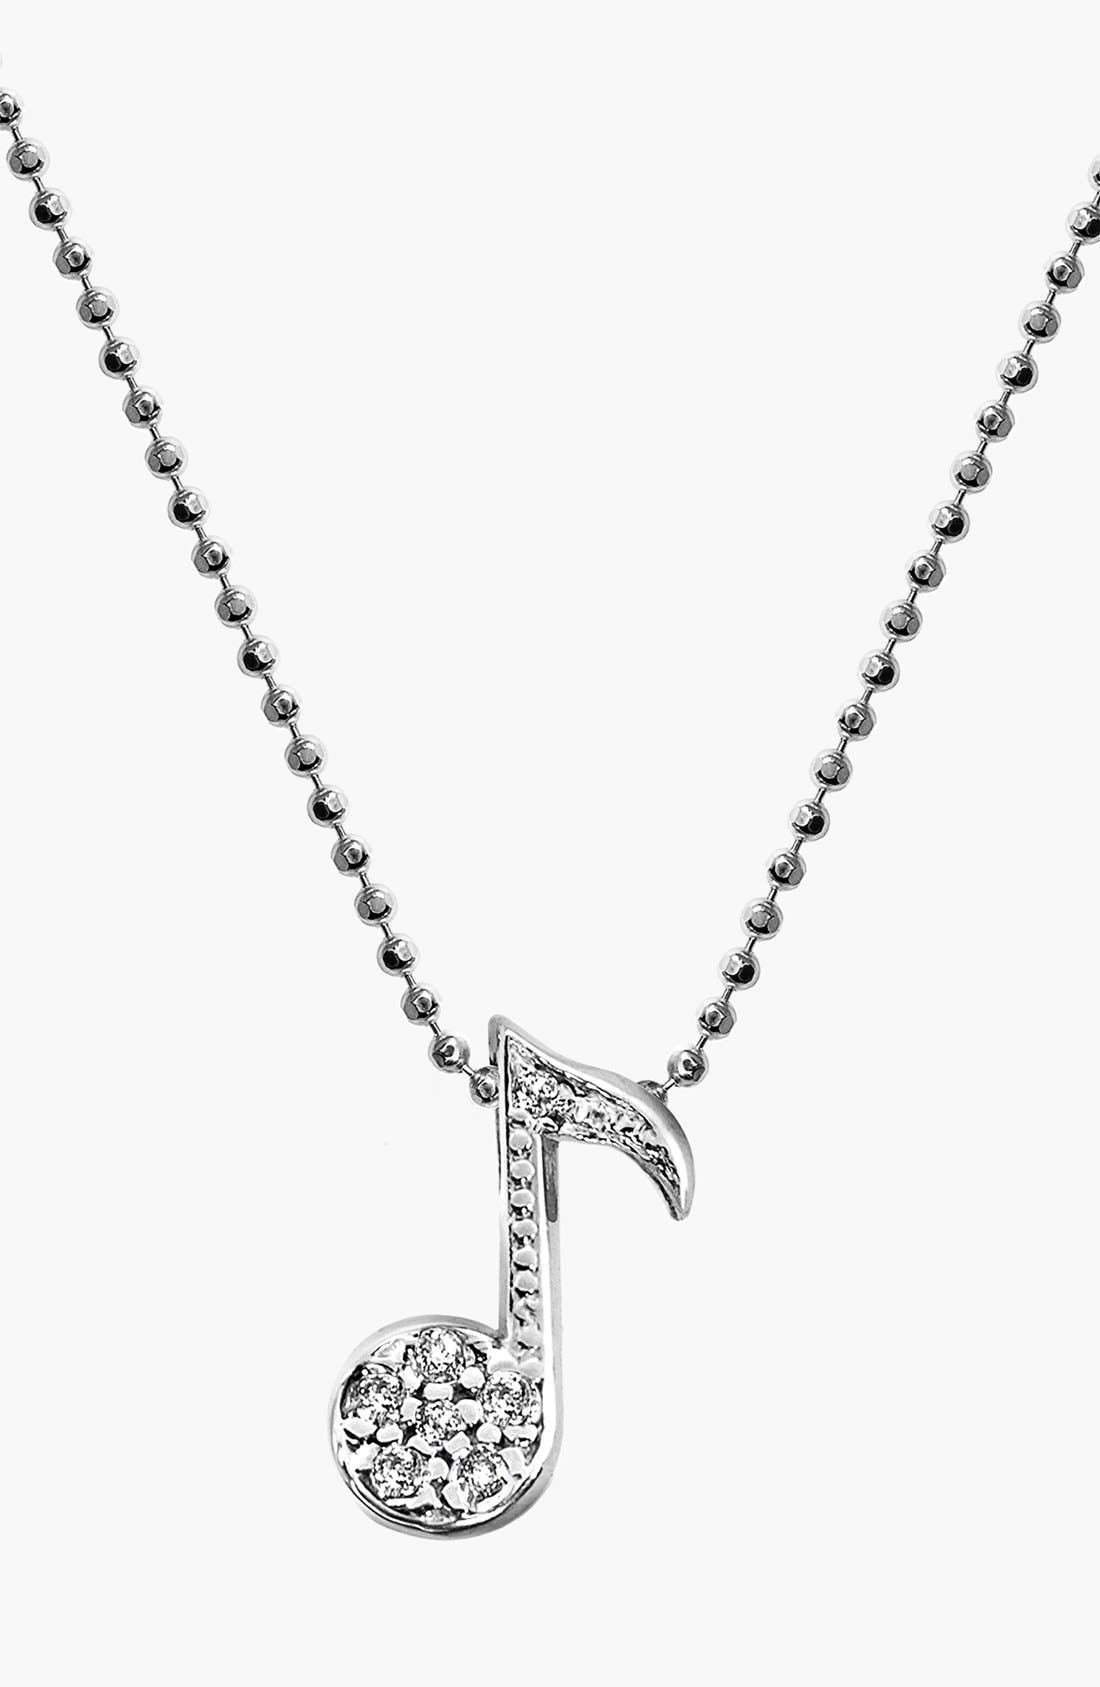 Main Image - Alex Woo 'Little Notes' Diamond Pendant Necklace